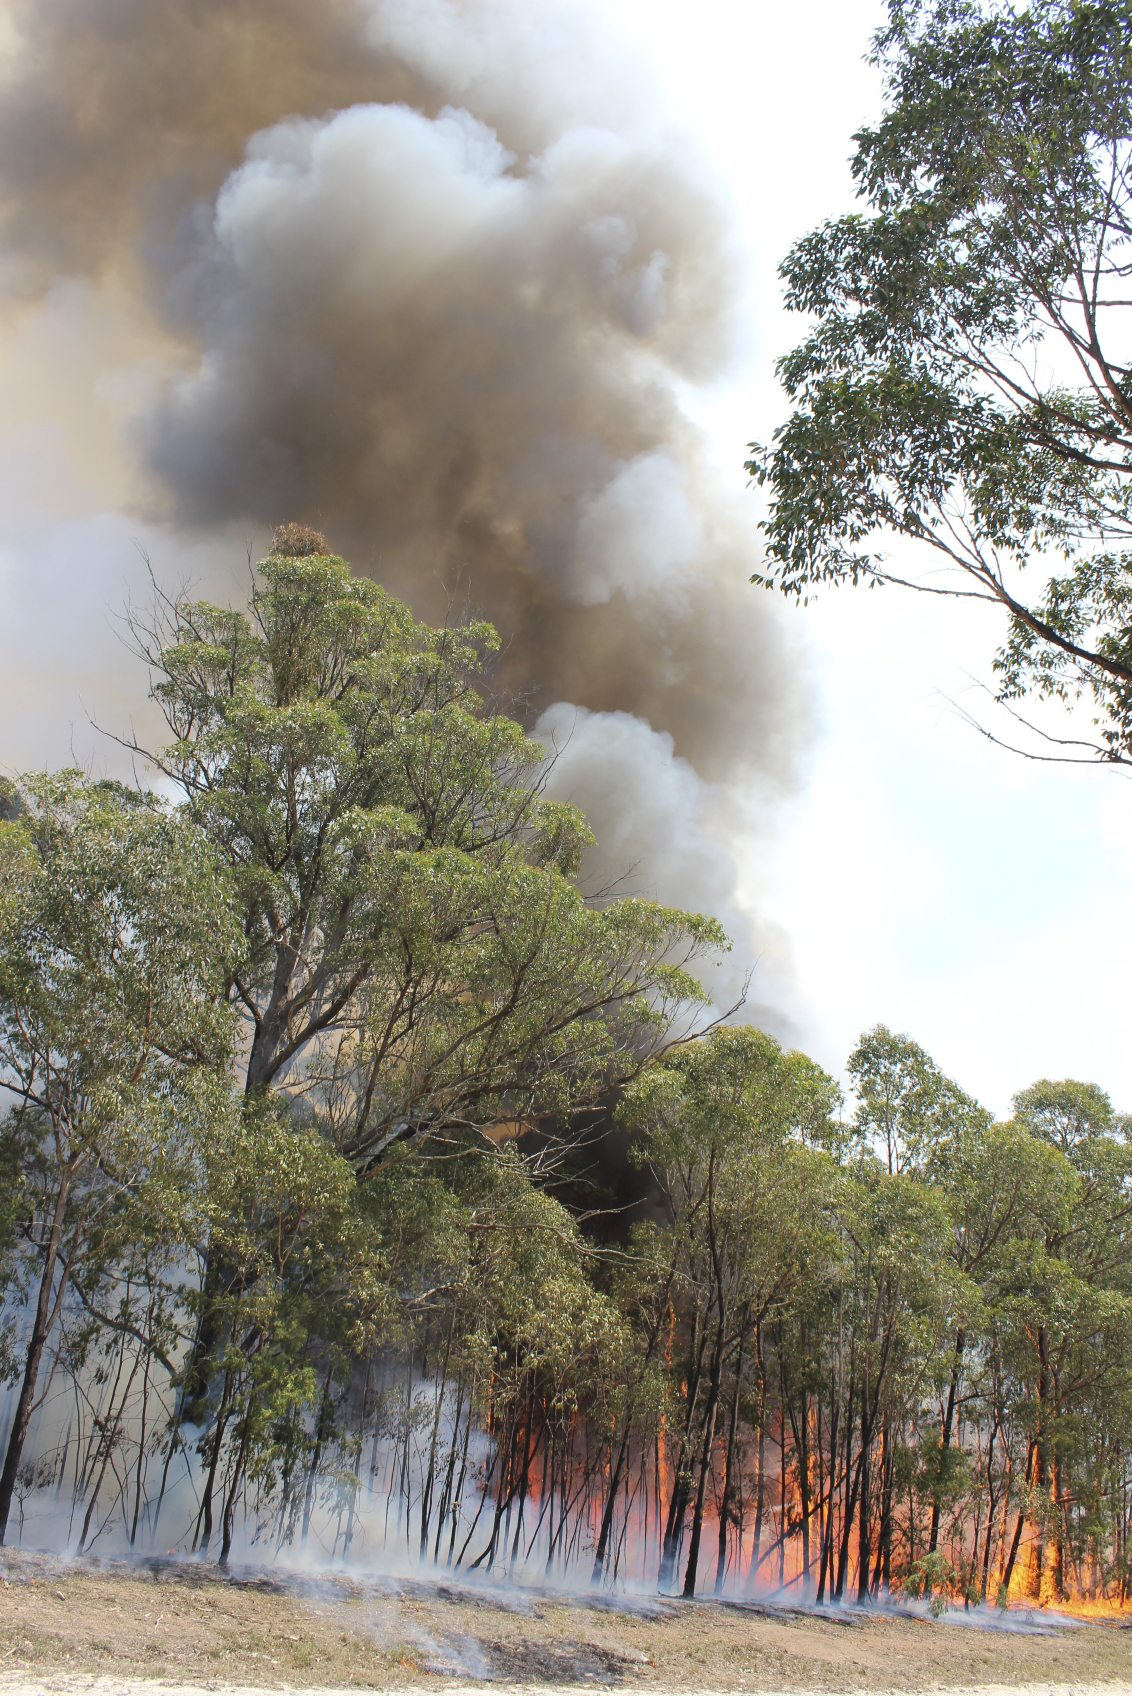 eucalyptus oil and fire information about flammable